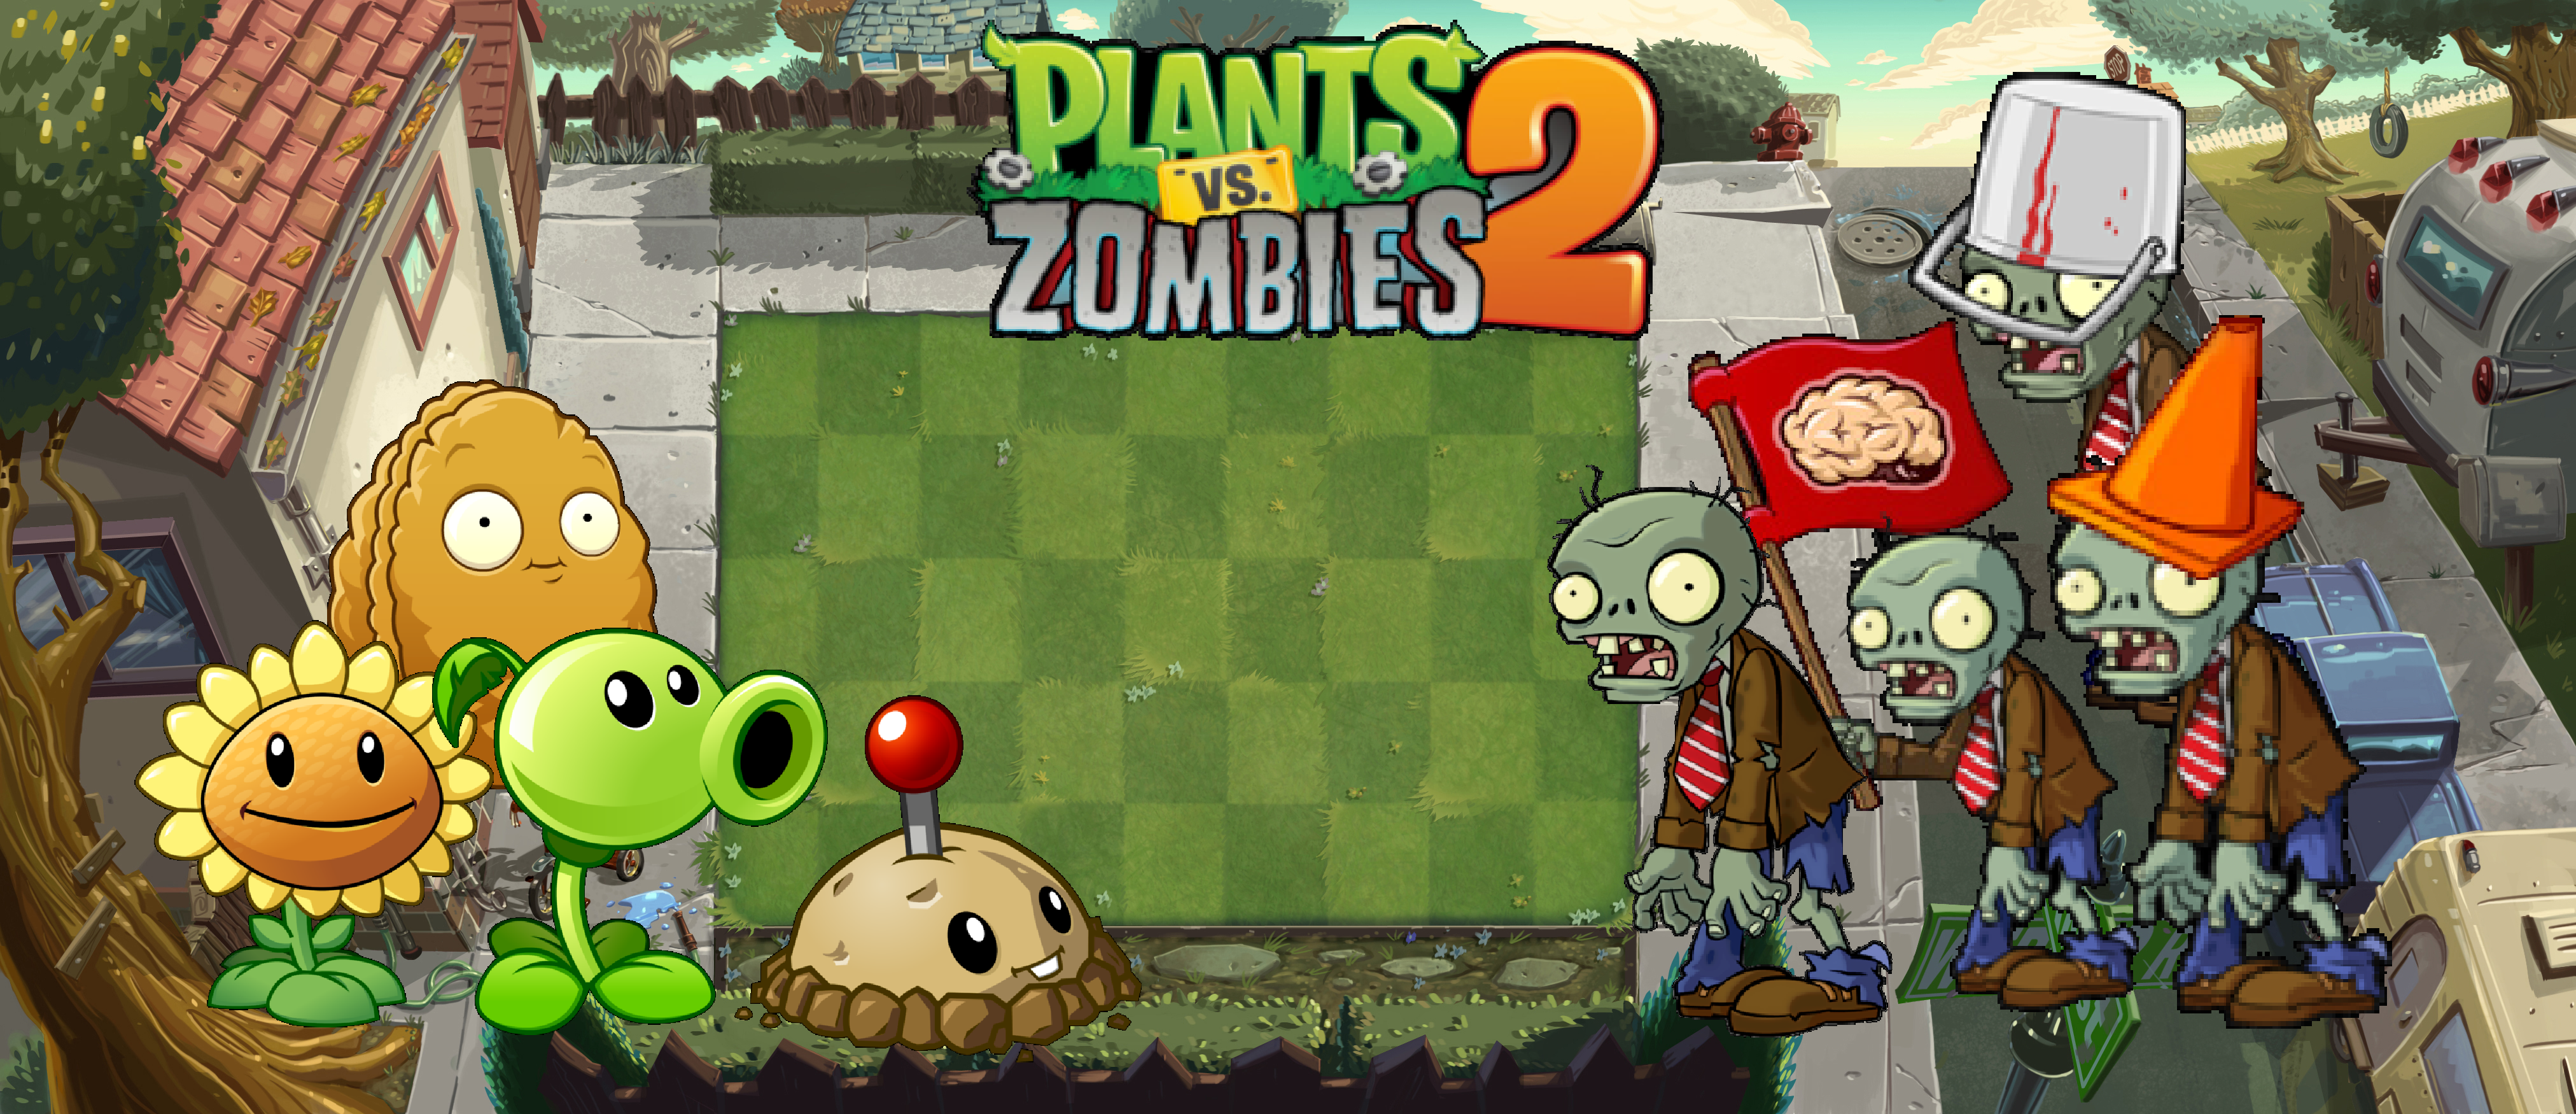 Plants Vs Zombies 2 Player S House Wallpaper By Photographerferd